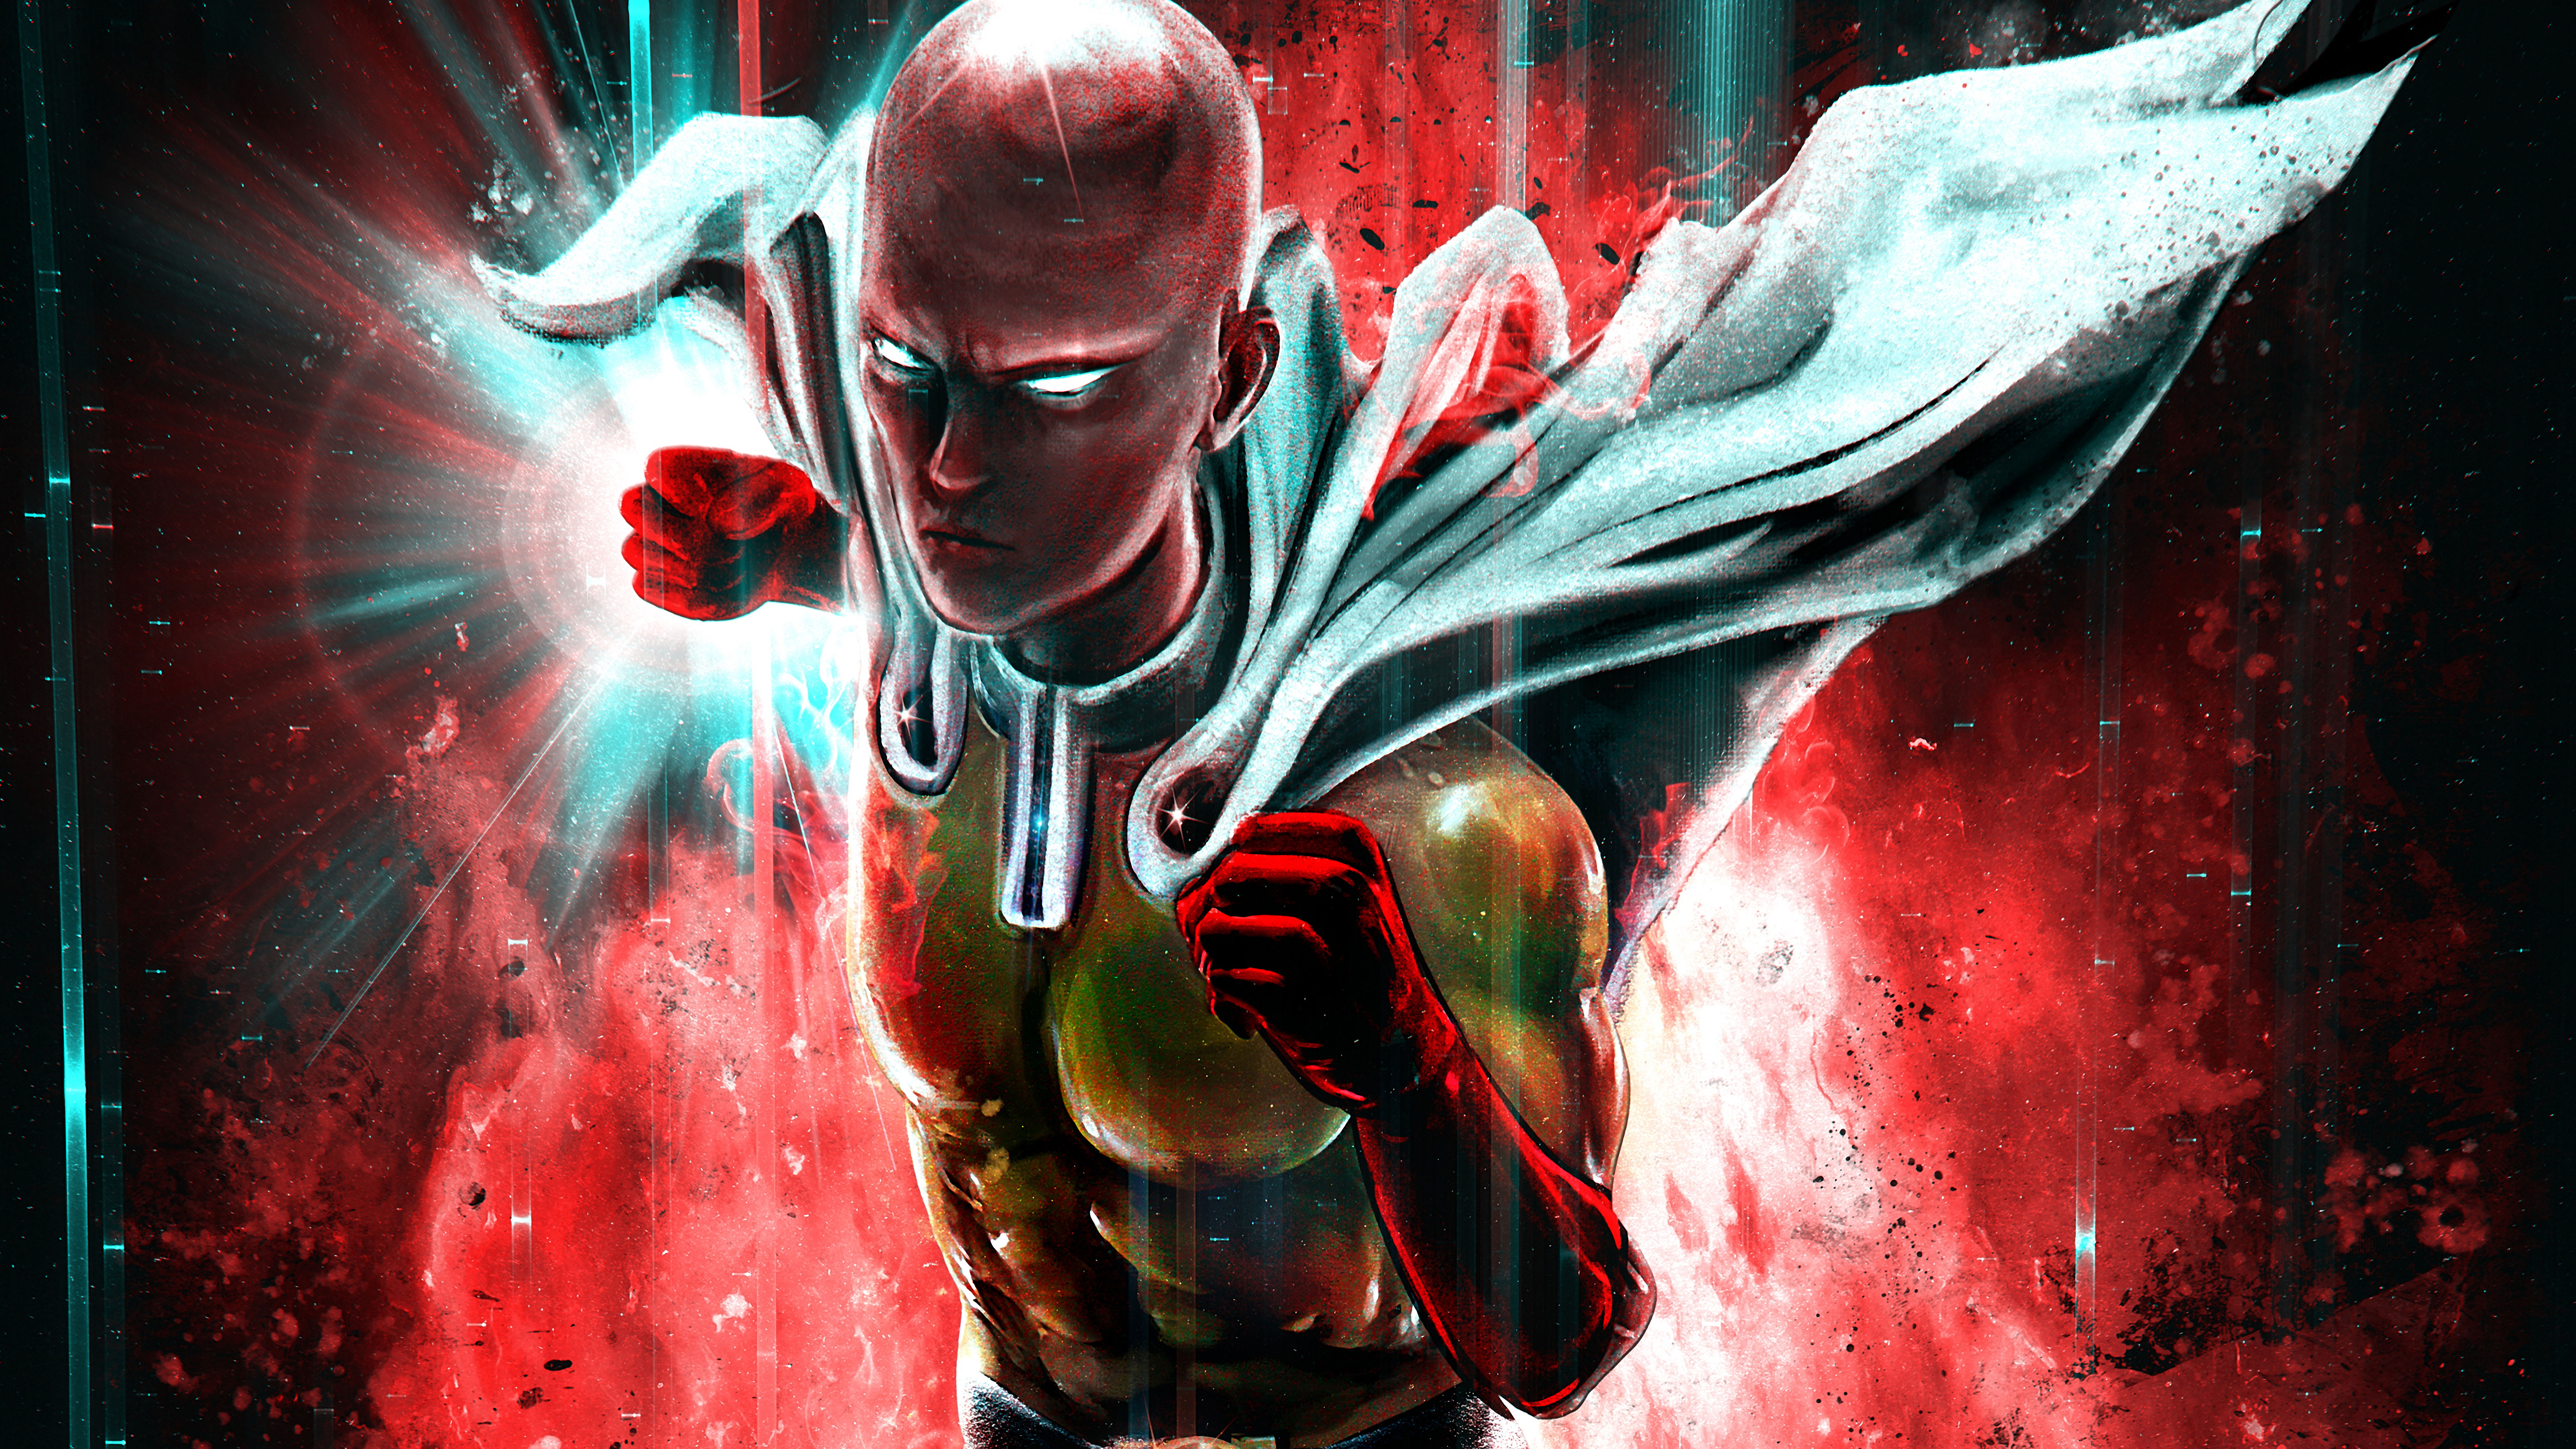 Wallpaper Hd Anime One Punch Man